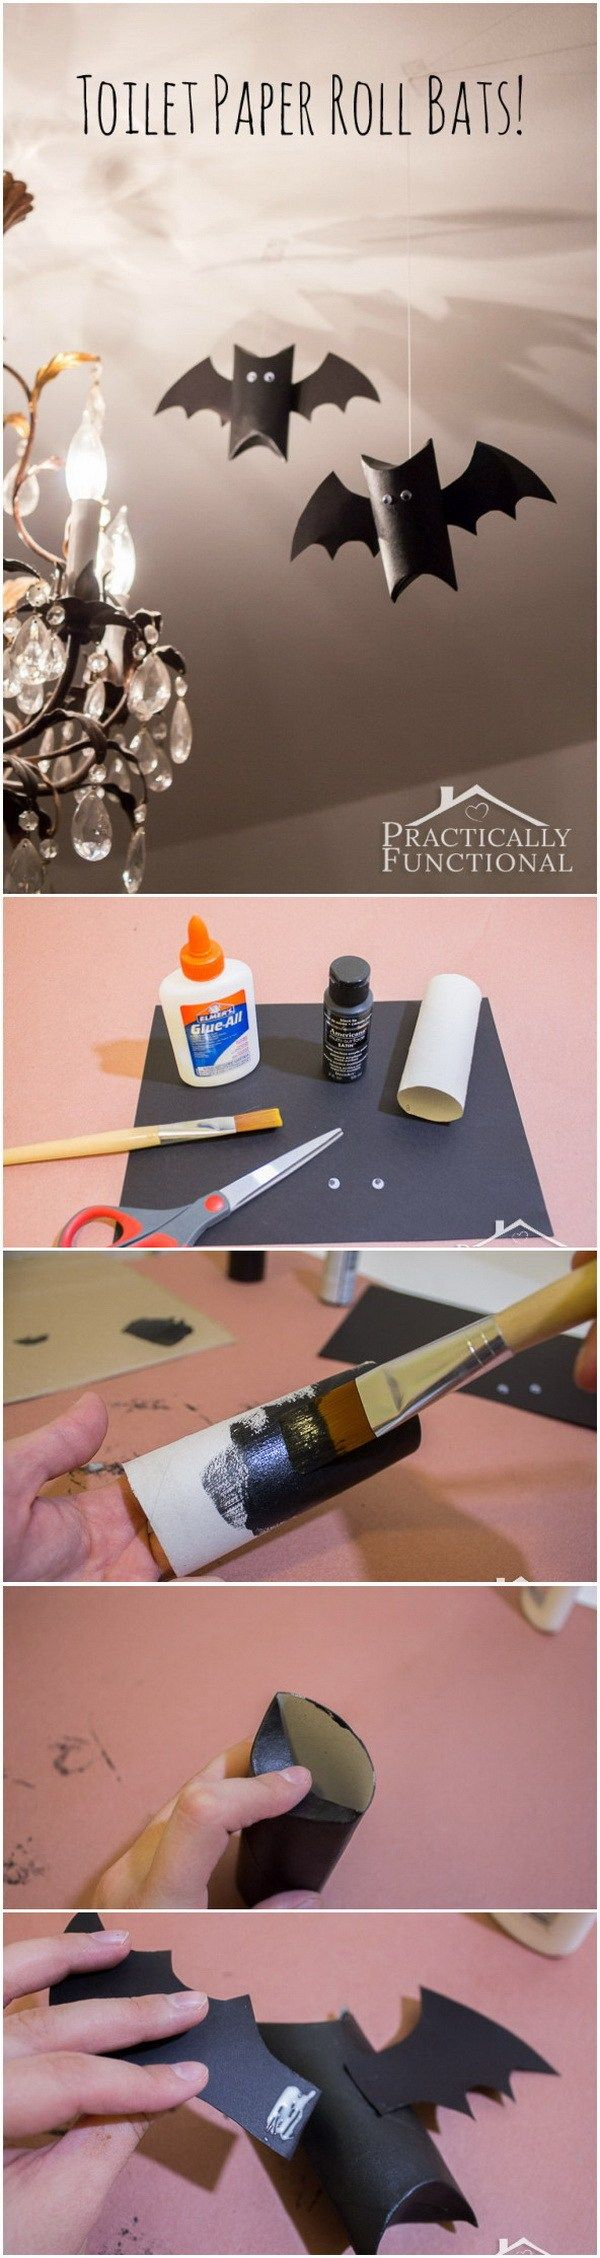 Toilet Paper Roll Bats. Recycled the toilet paper rolls at home and transferd them into these adorable halloween crafts. Super easy for kids to make.